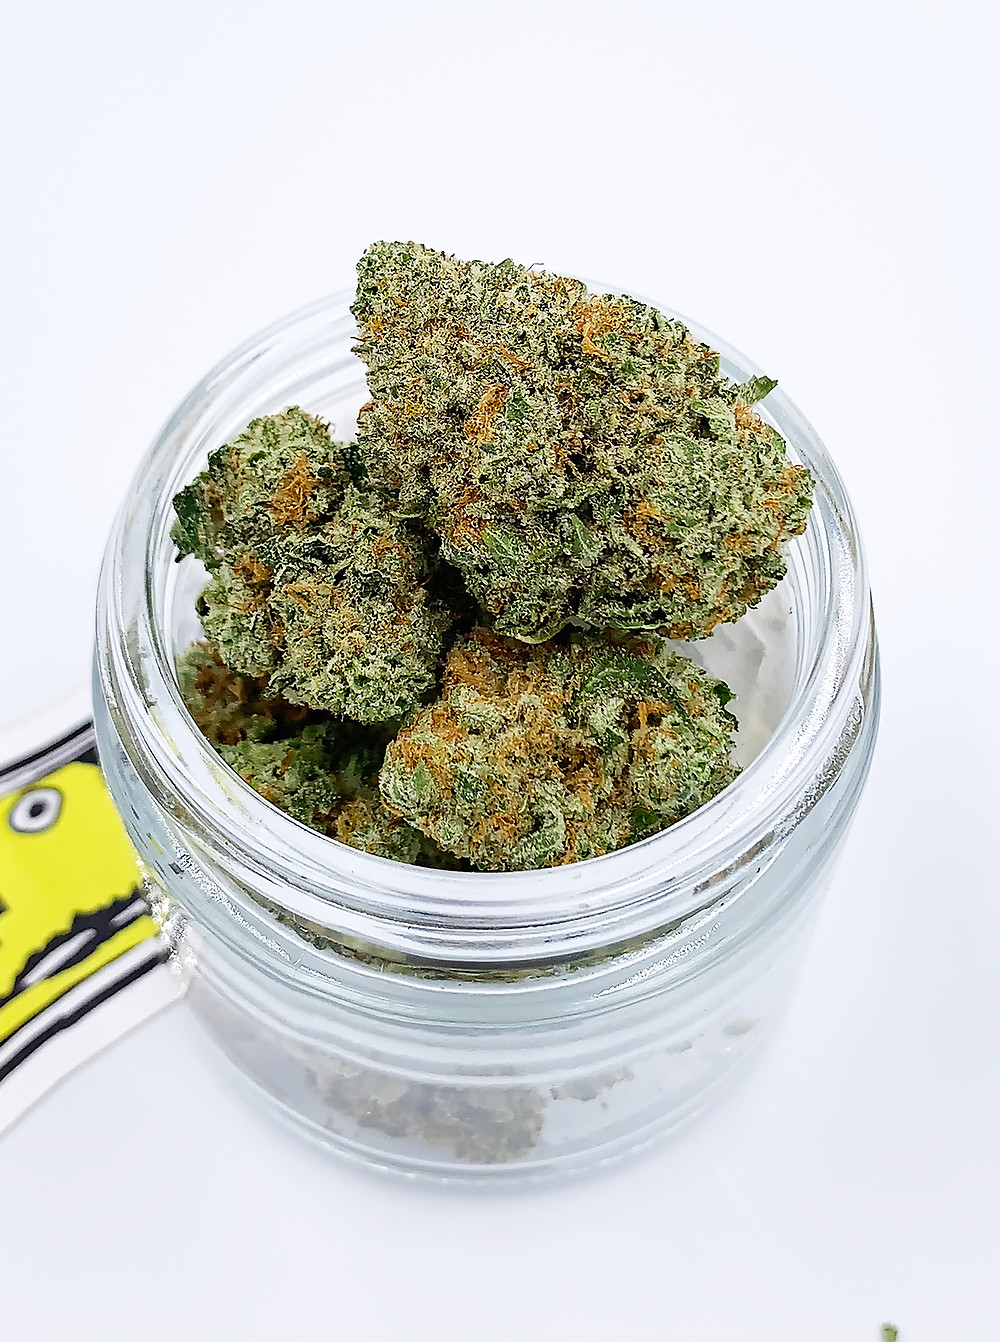 Stardawg in a jar - strain review and profile by the epic remedy